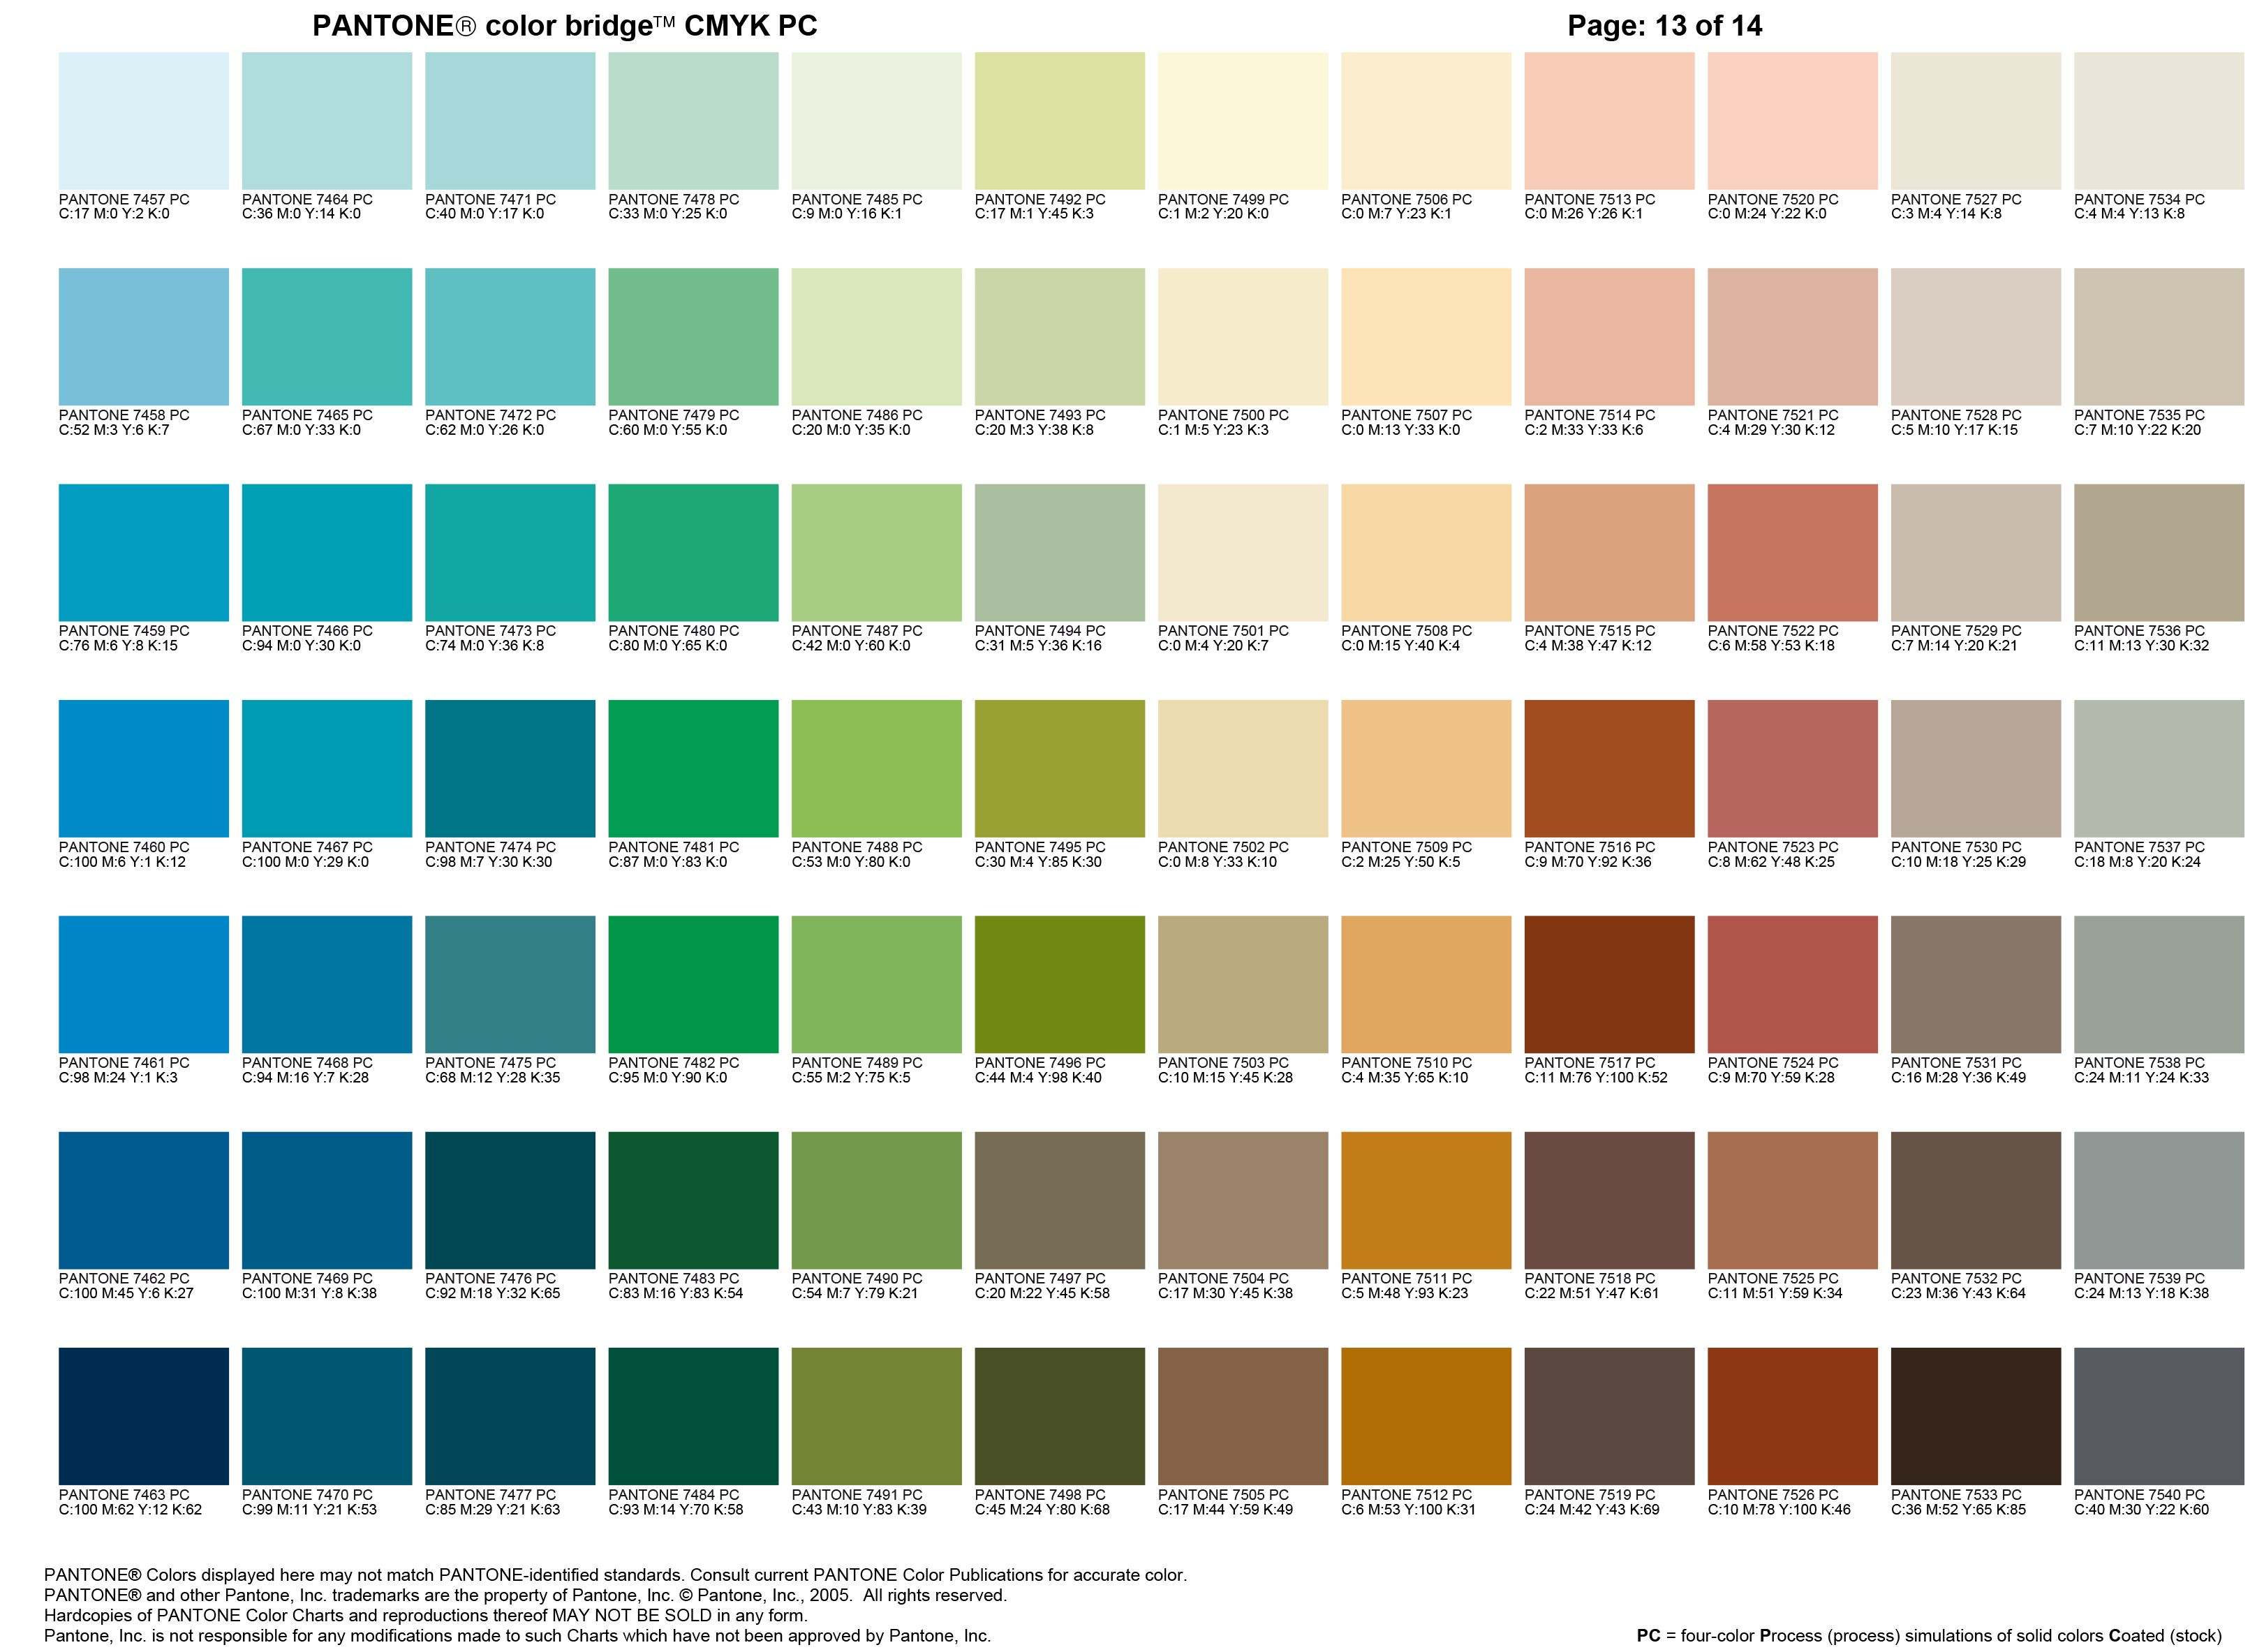 carta color pantone 13 color pantone chart 13 apuntes de dise o design notes pinterest. Black Bedroom Furniture Sets. Home Design Ideas